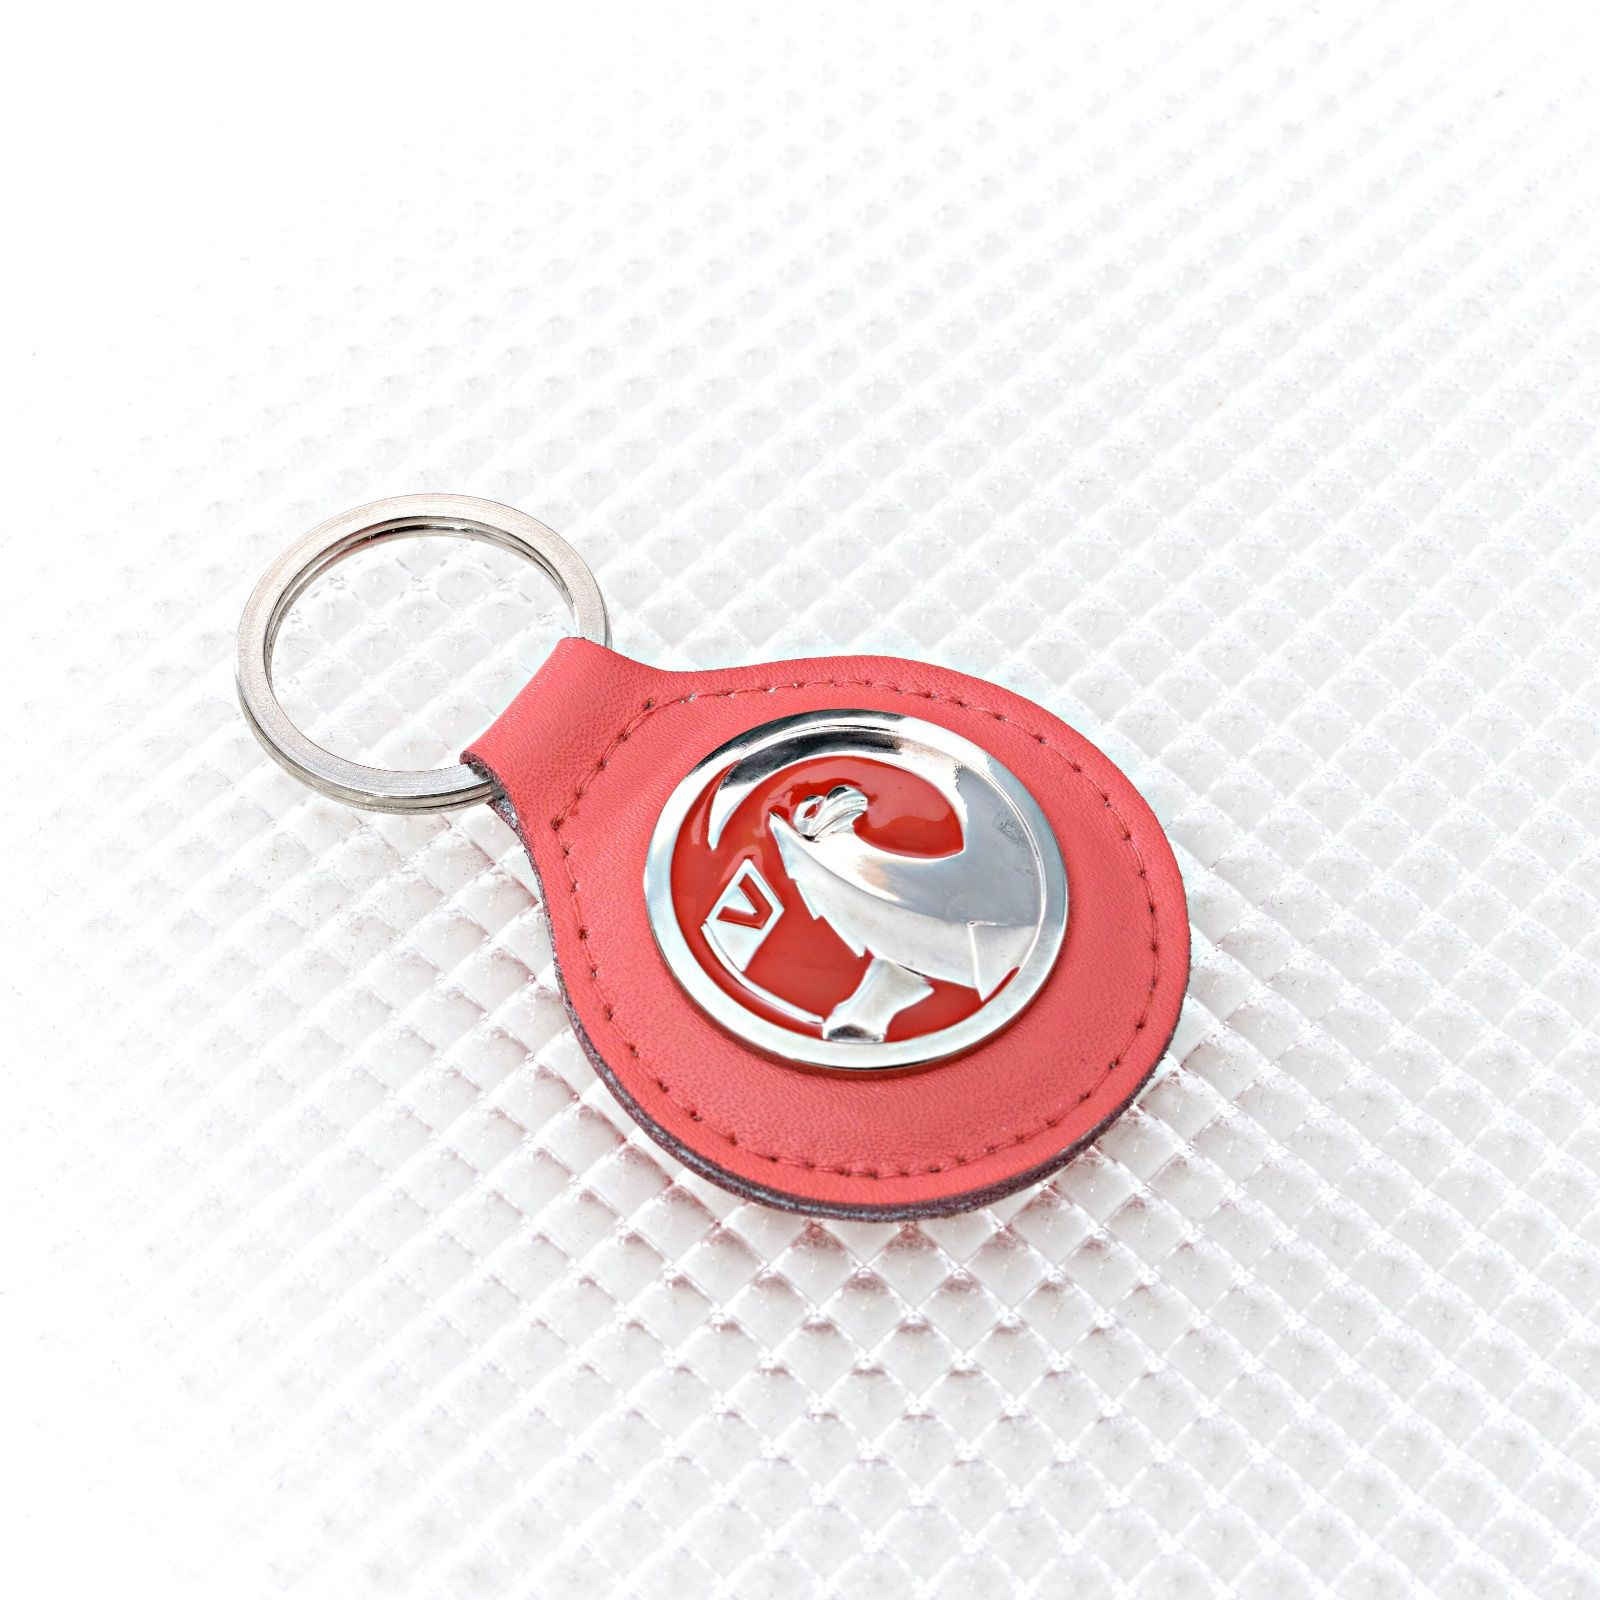 Richbrook Official Spectrum Range Keyring Sky Blue With Vauxhall Logo